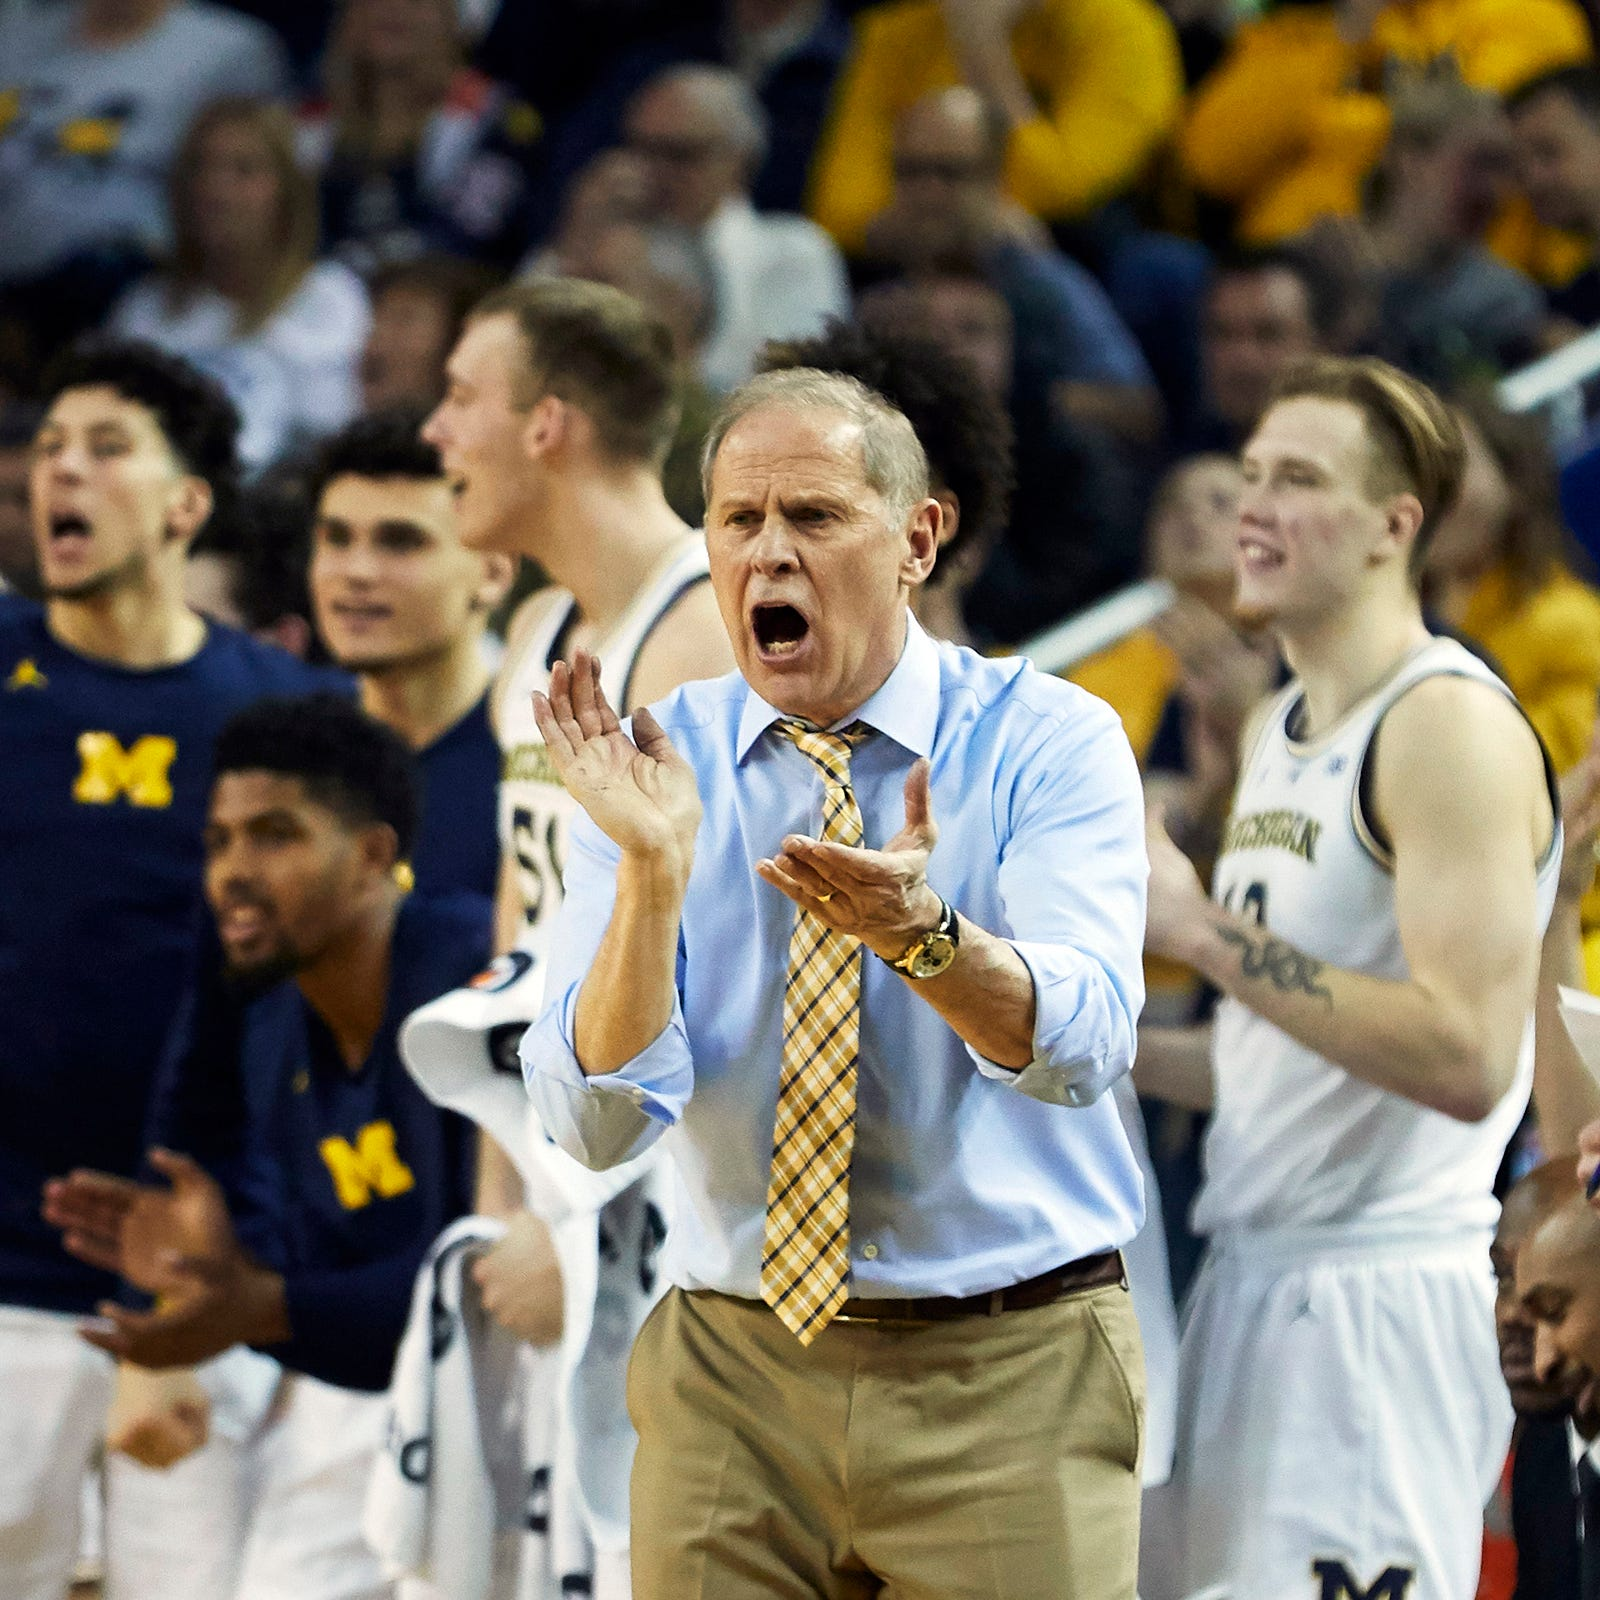 Michigan basketball's close win reminds Beilein of past upset bids